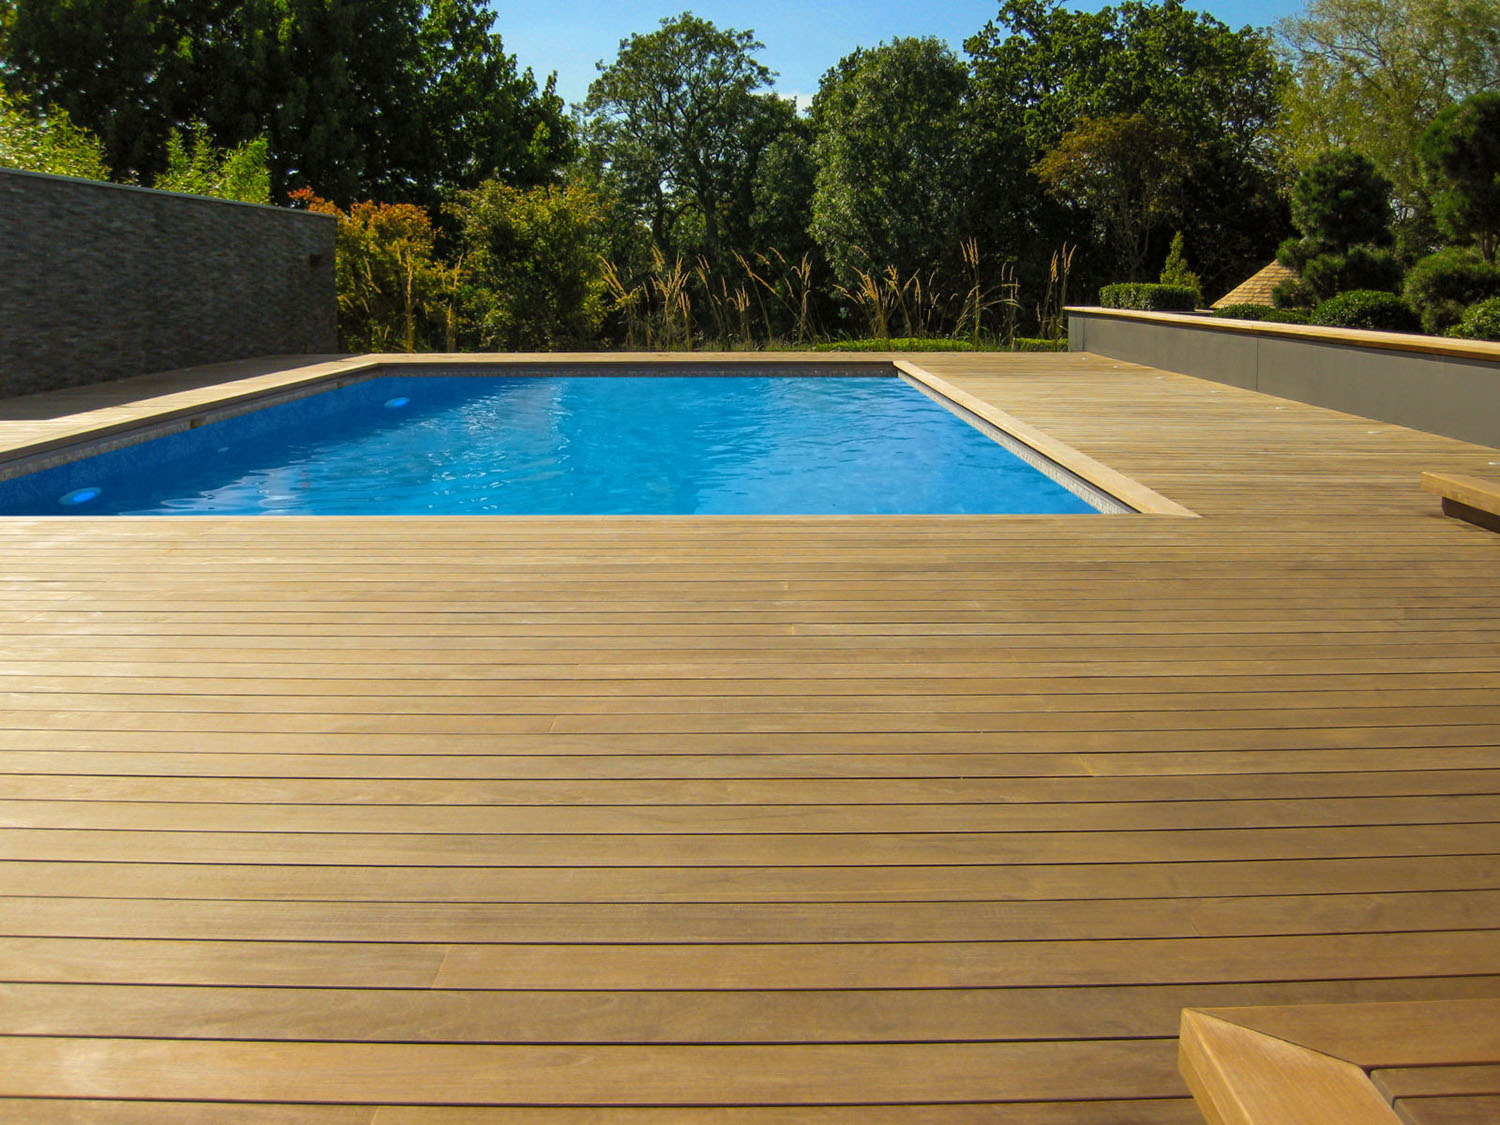 Ipe Timber Deck Boards surround pool at beautiful London residence